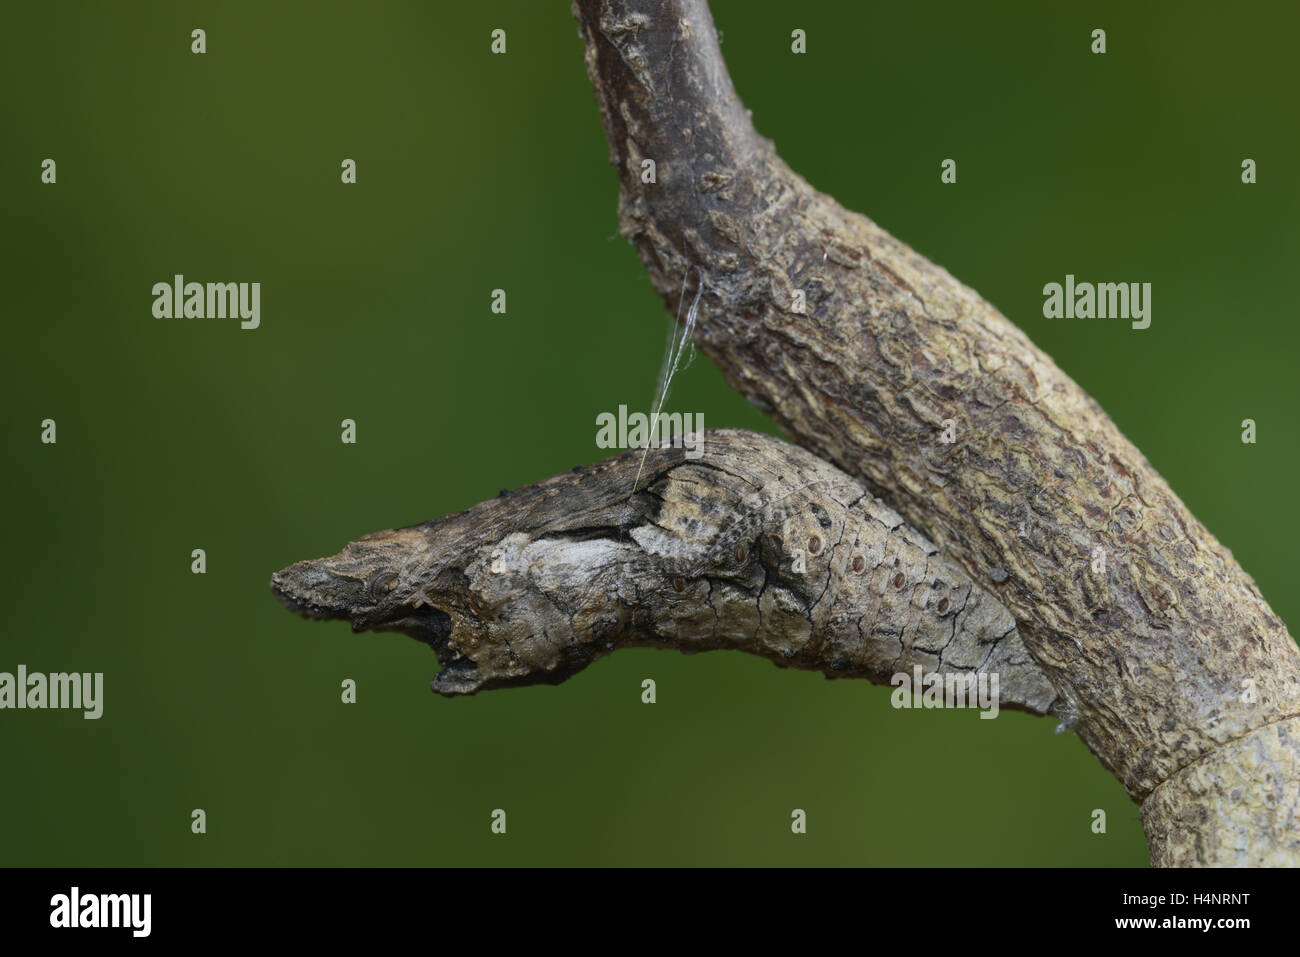 Giant Swallowtail (Papilio cresphontes), chrysalis, broken branch mimicry, Hill Country, Texas, USA - Stock Image